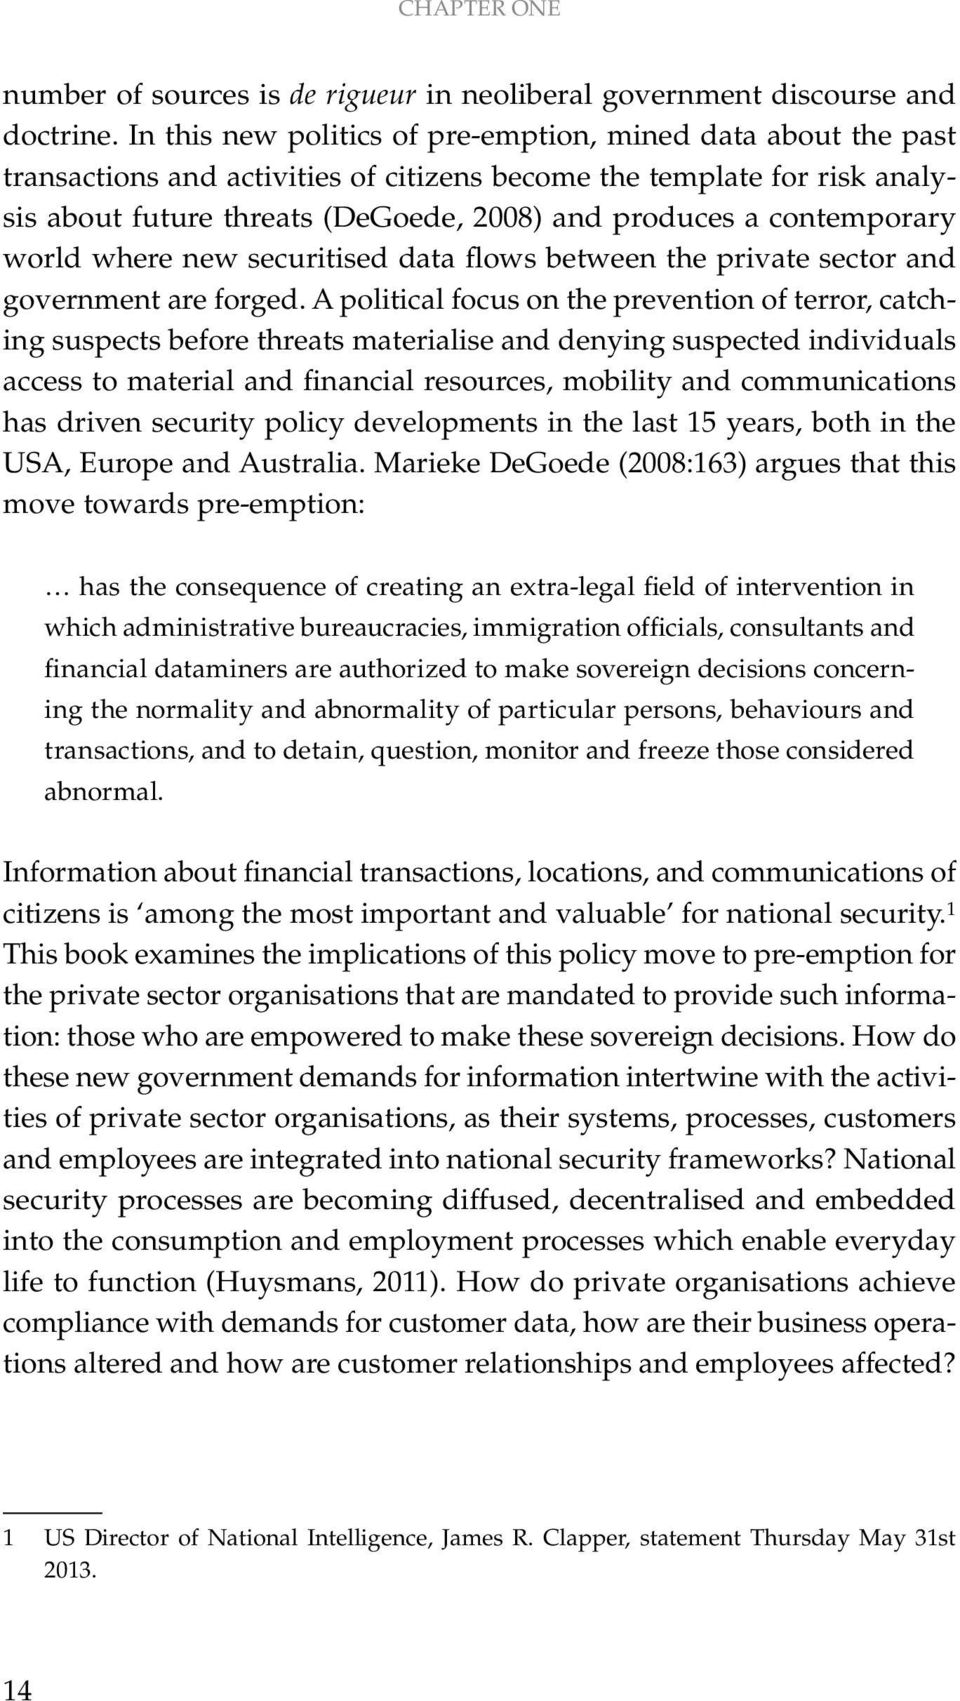 contemporary world where new securitised data flows between the private sector and government are forged.